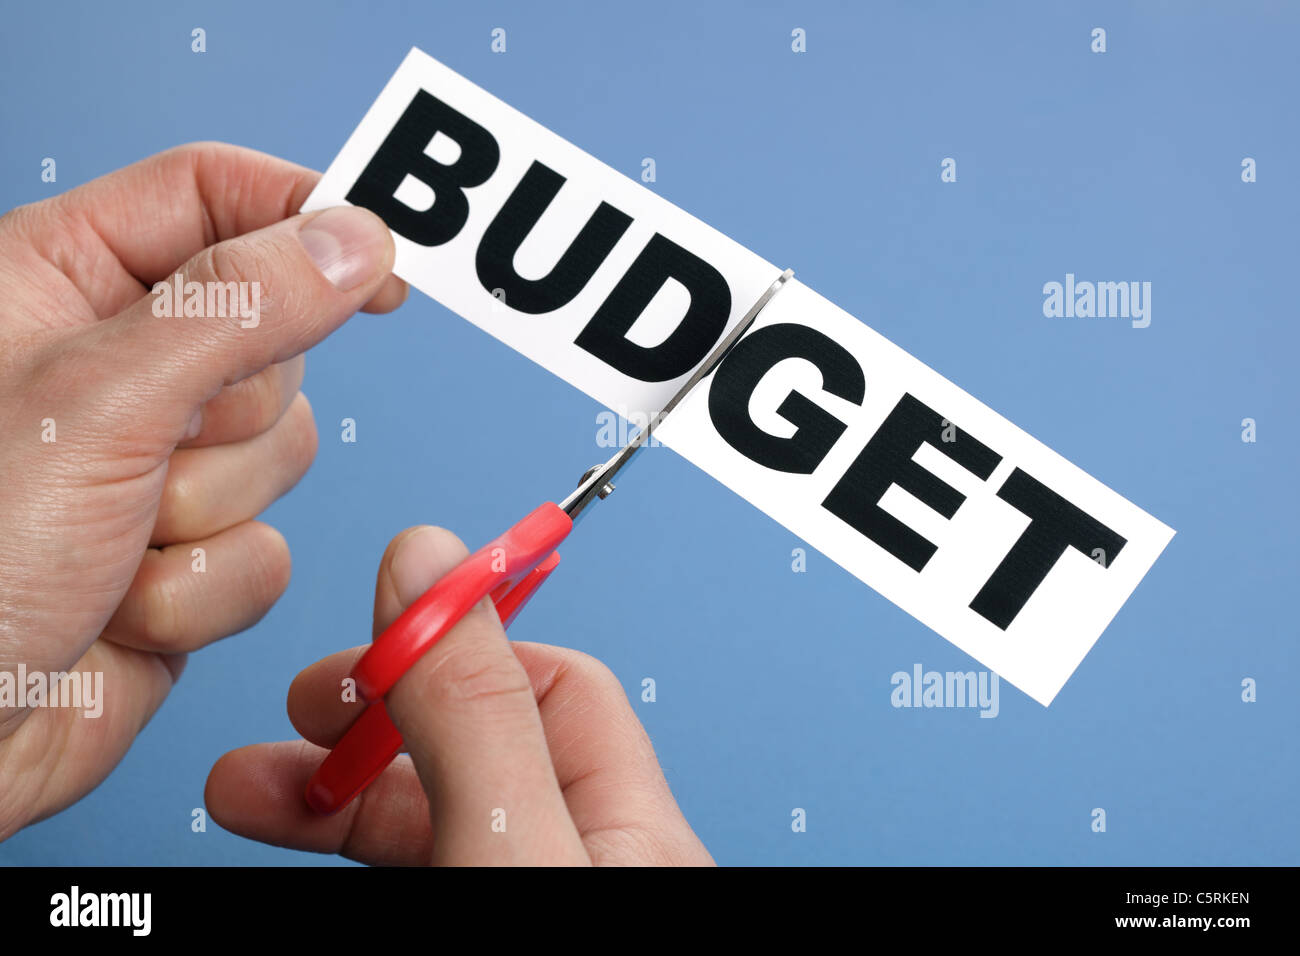 Budget cuts - Stock Image